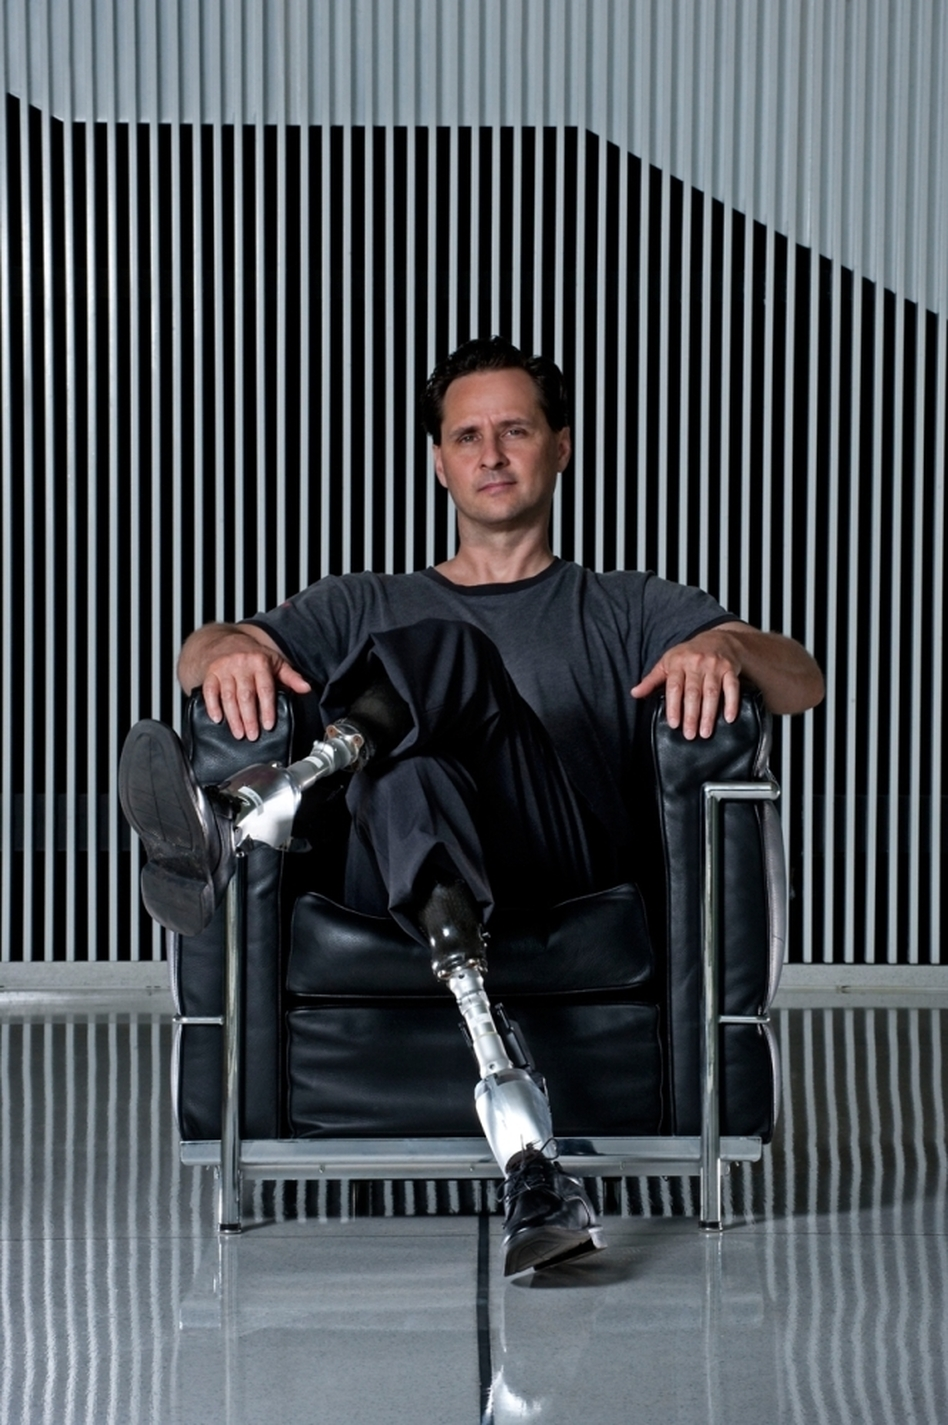 The Double Amputee Who Designs Better Limbs | WBUR News